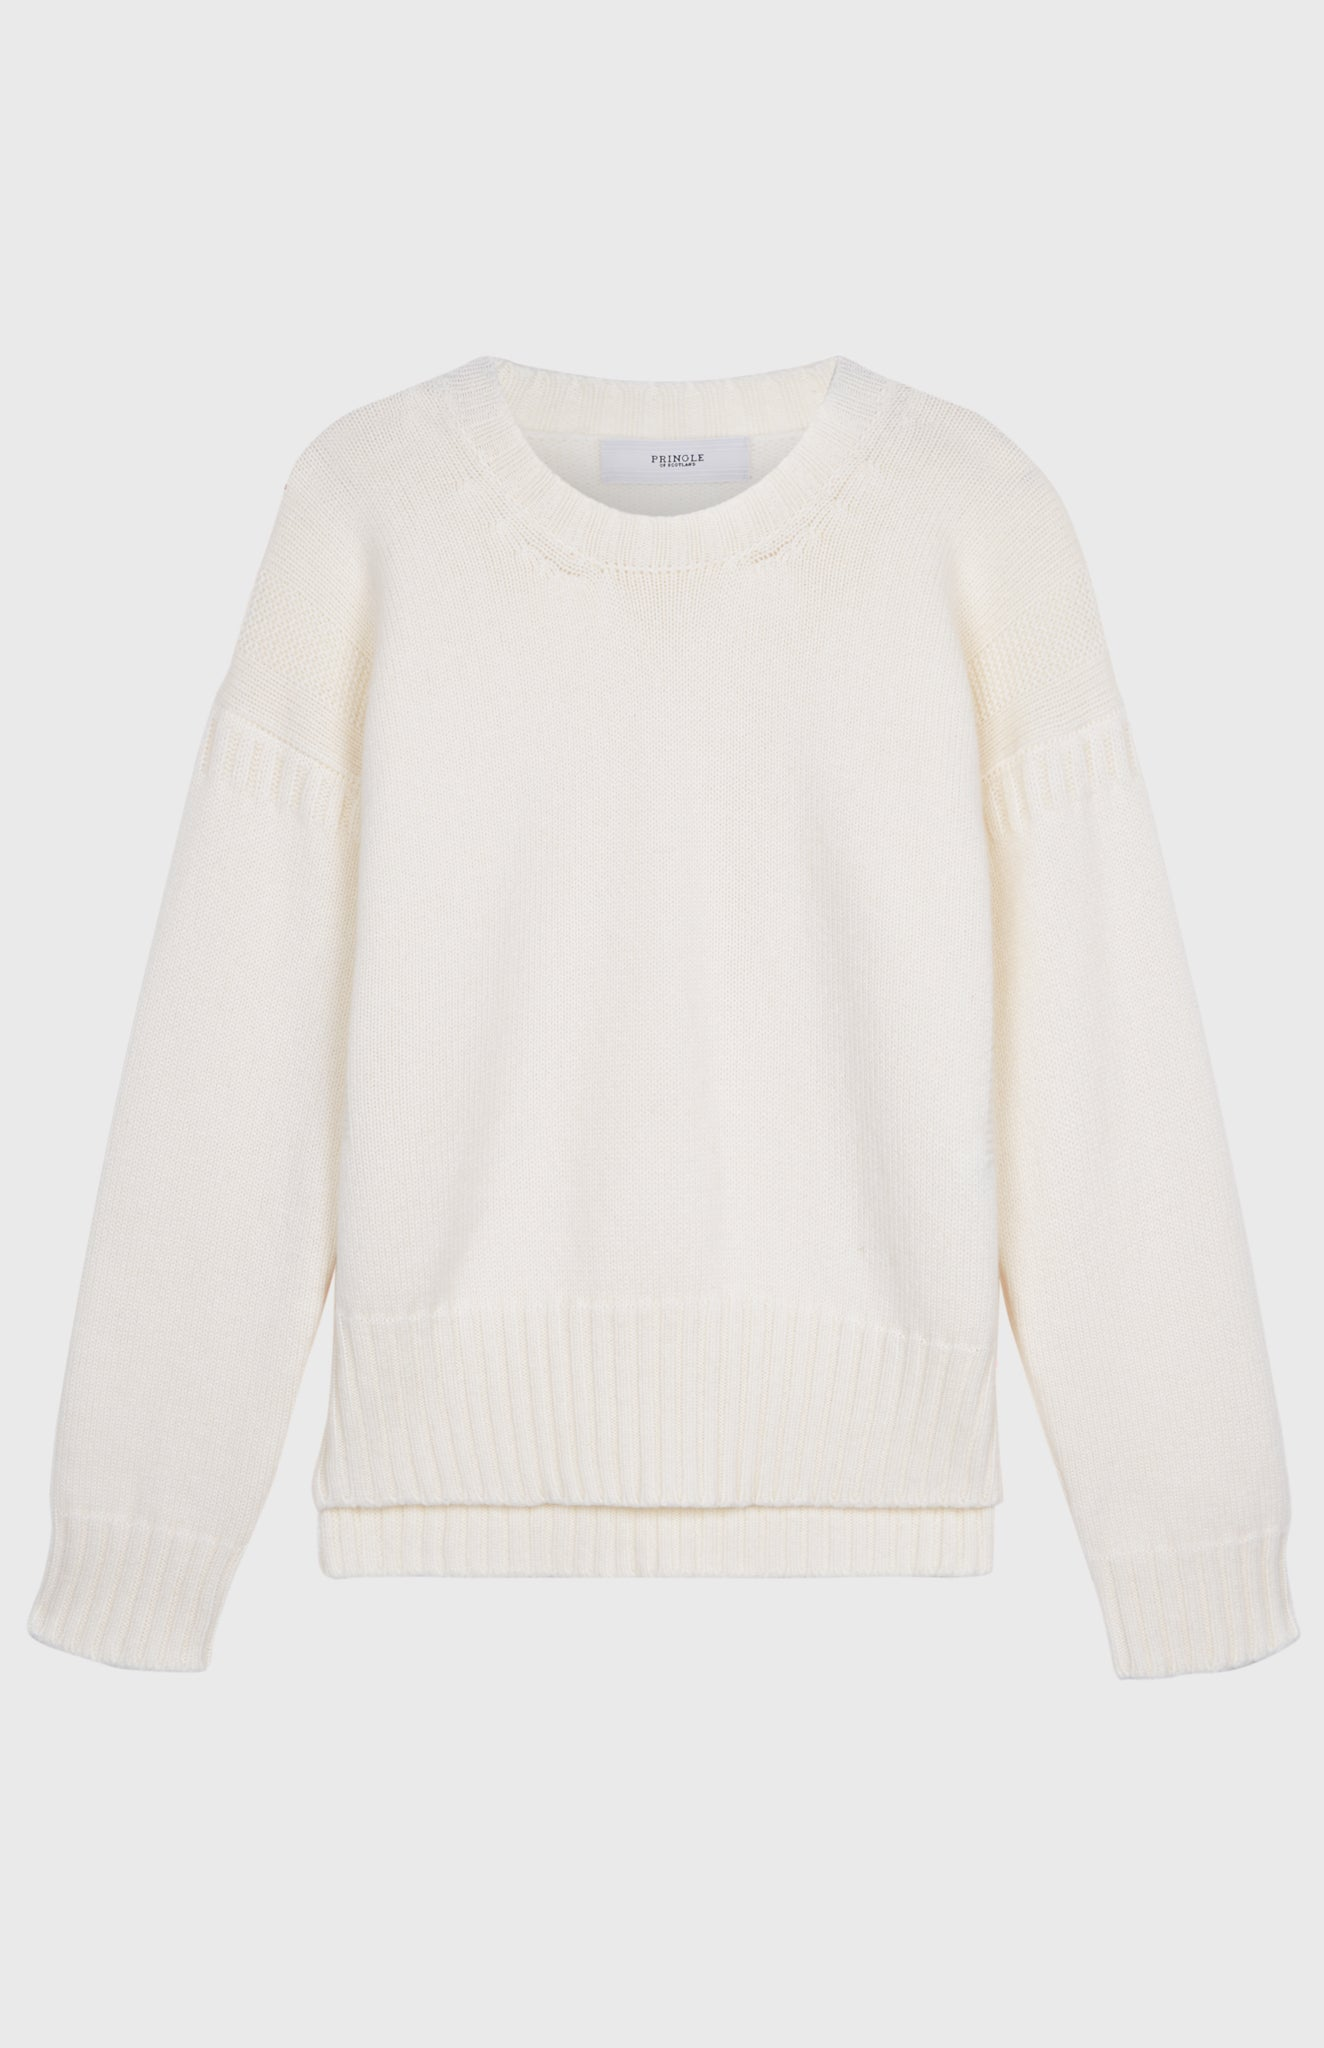 Guernsey Stitch Round Neck Jumper In Off White